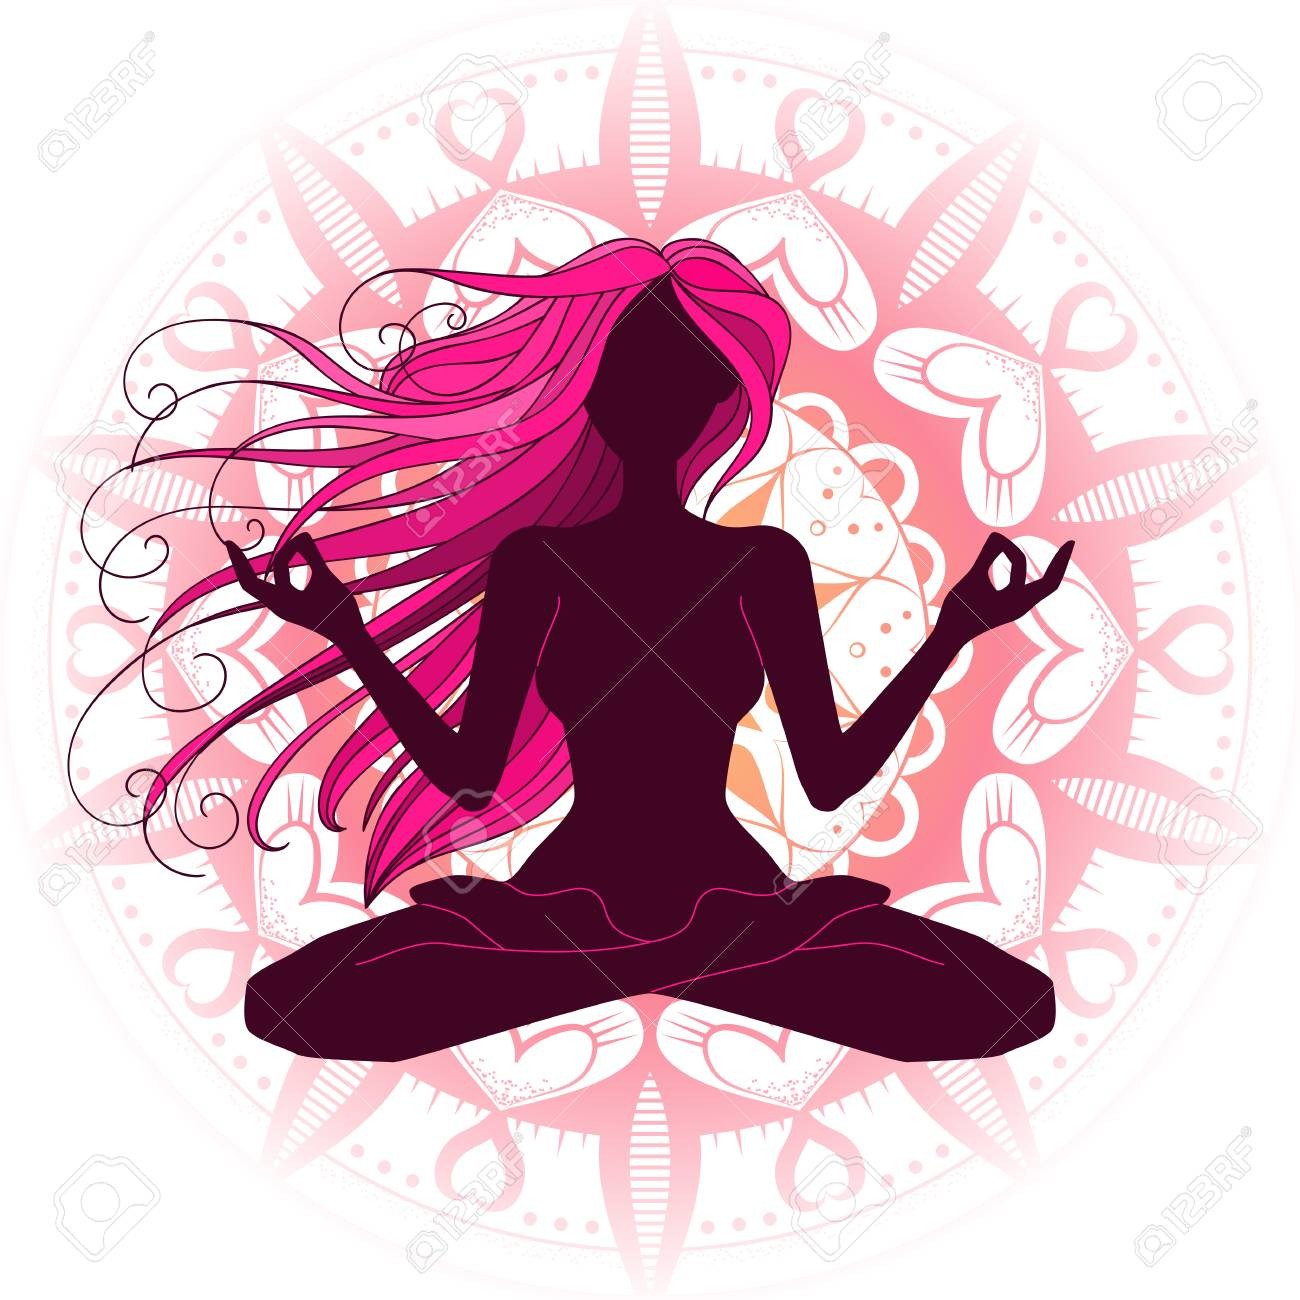 Beautiful Woman Silhouette Meditating Doing Yoga Graphic Vector Royalty Free Cliparts Vectors And Stock Illustration Image 84609985